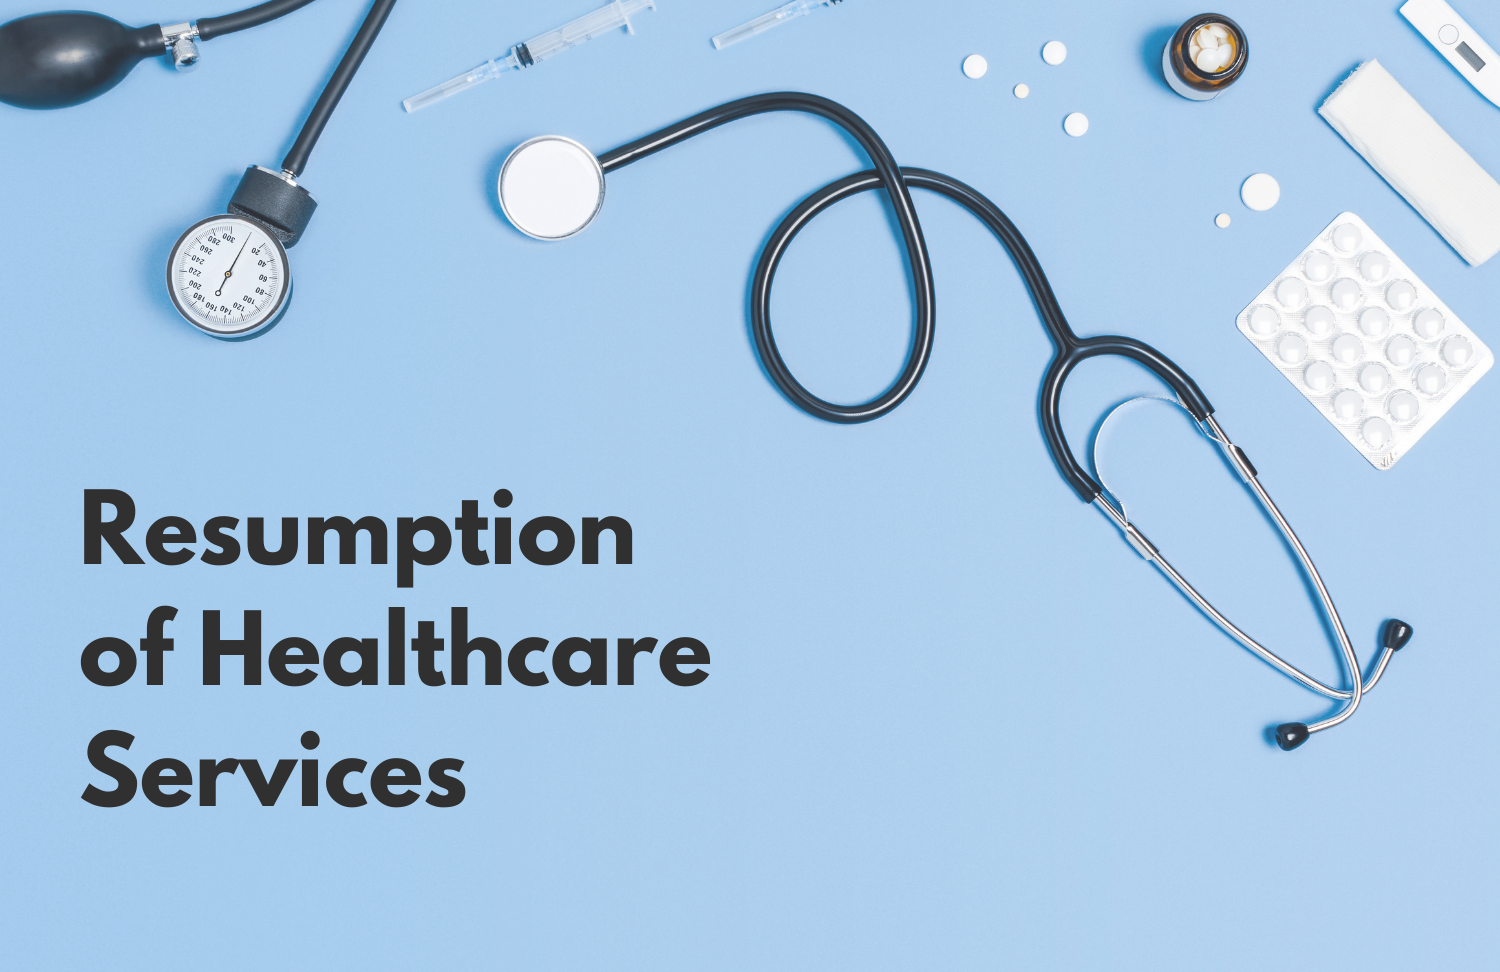 Resumption of Healthcare Services